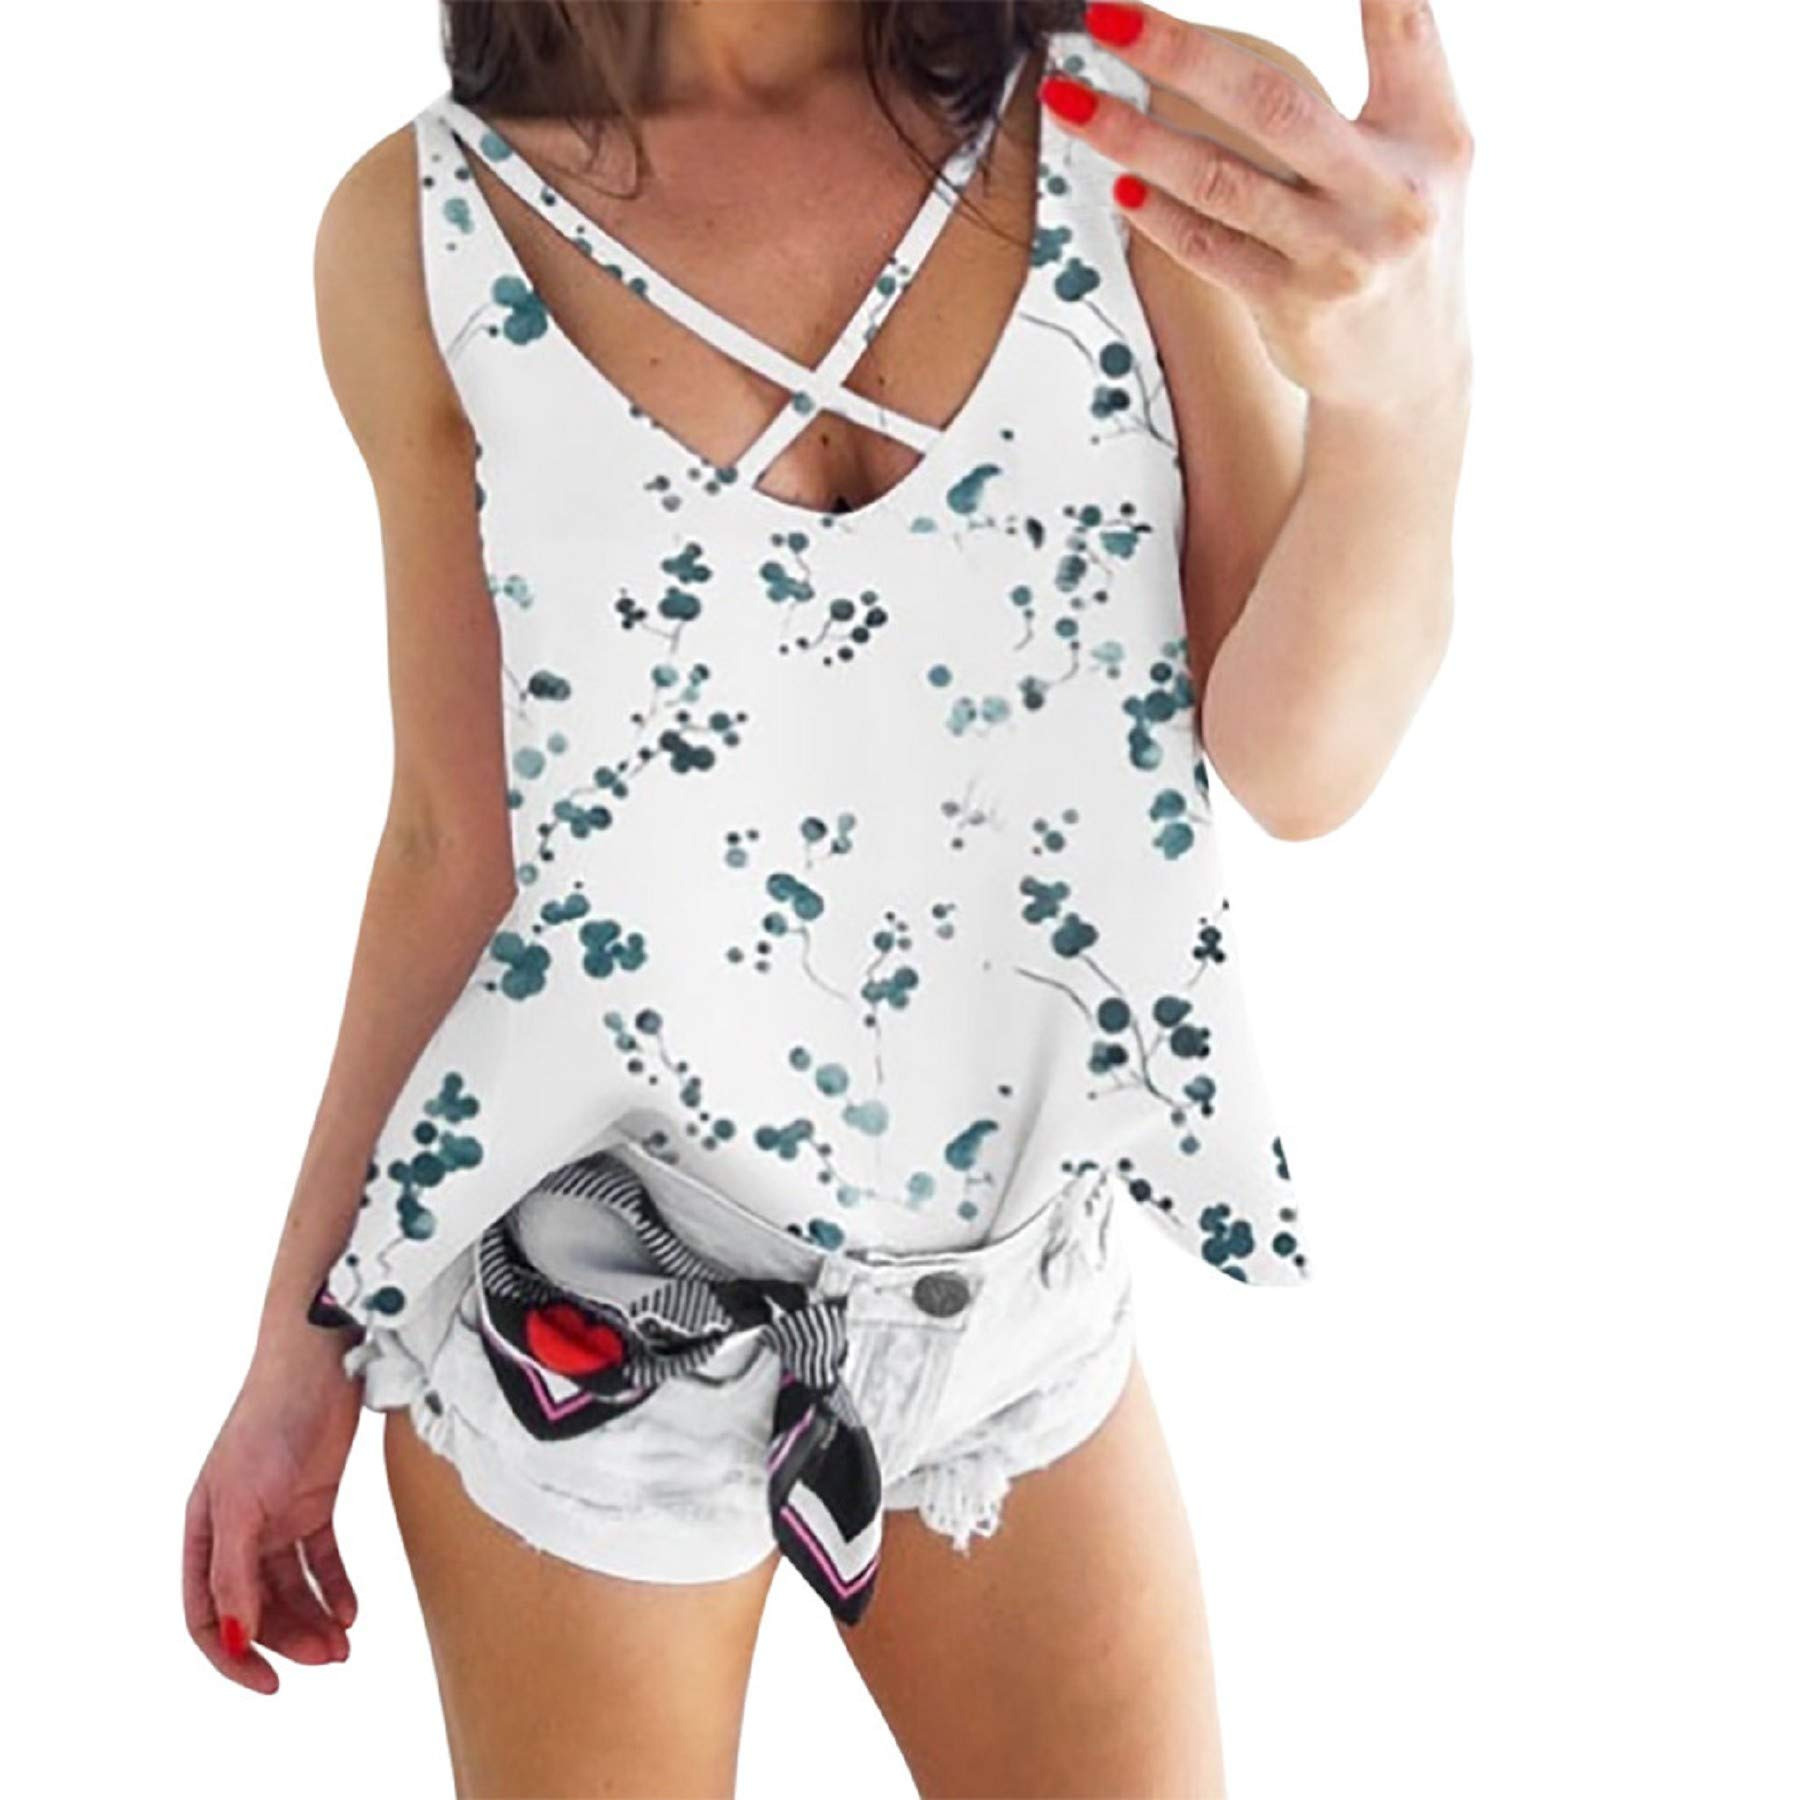 Women's Floral Print V Neck Sleeveless Camis Tops Ladies Casual Summer Criss Cross Blouse Tank Top Vest White